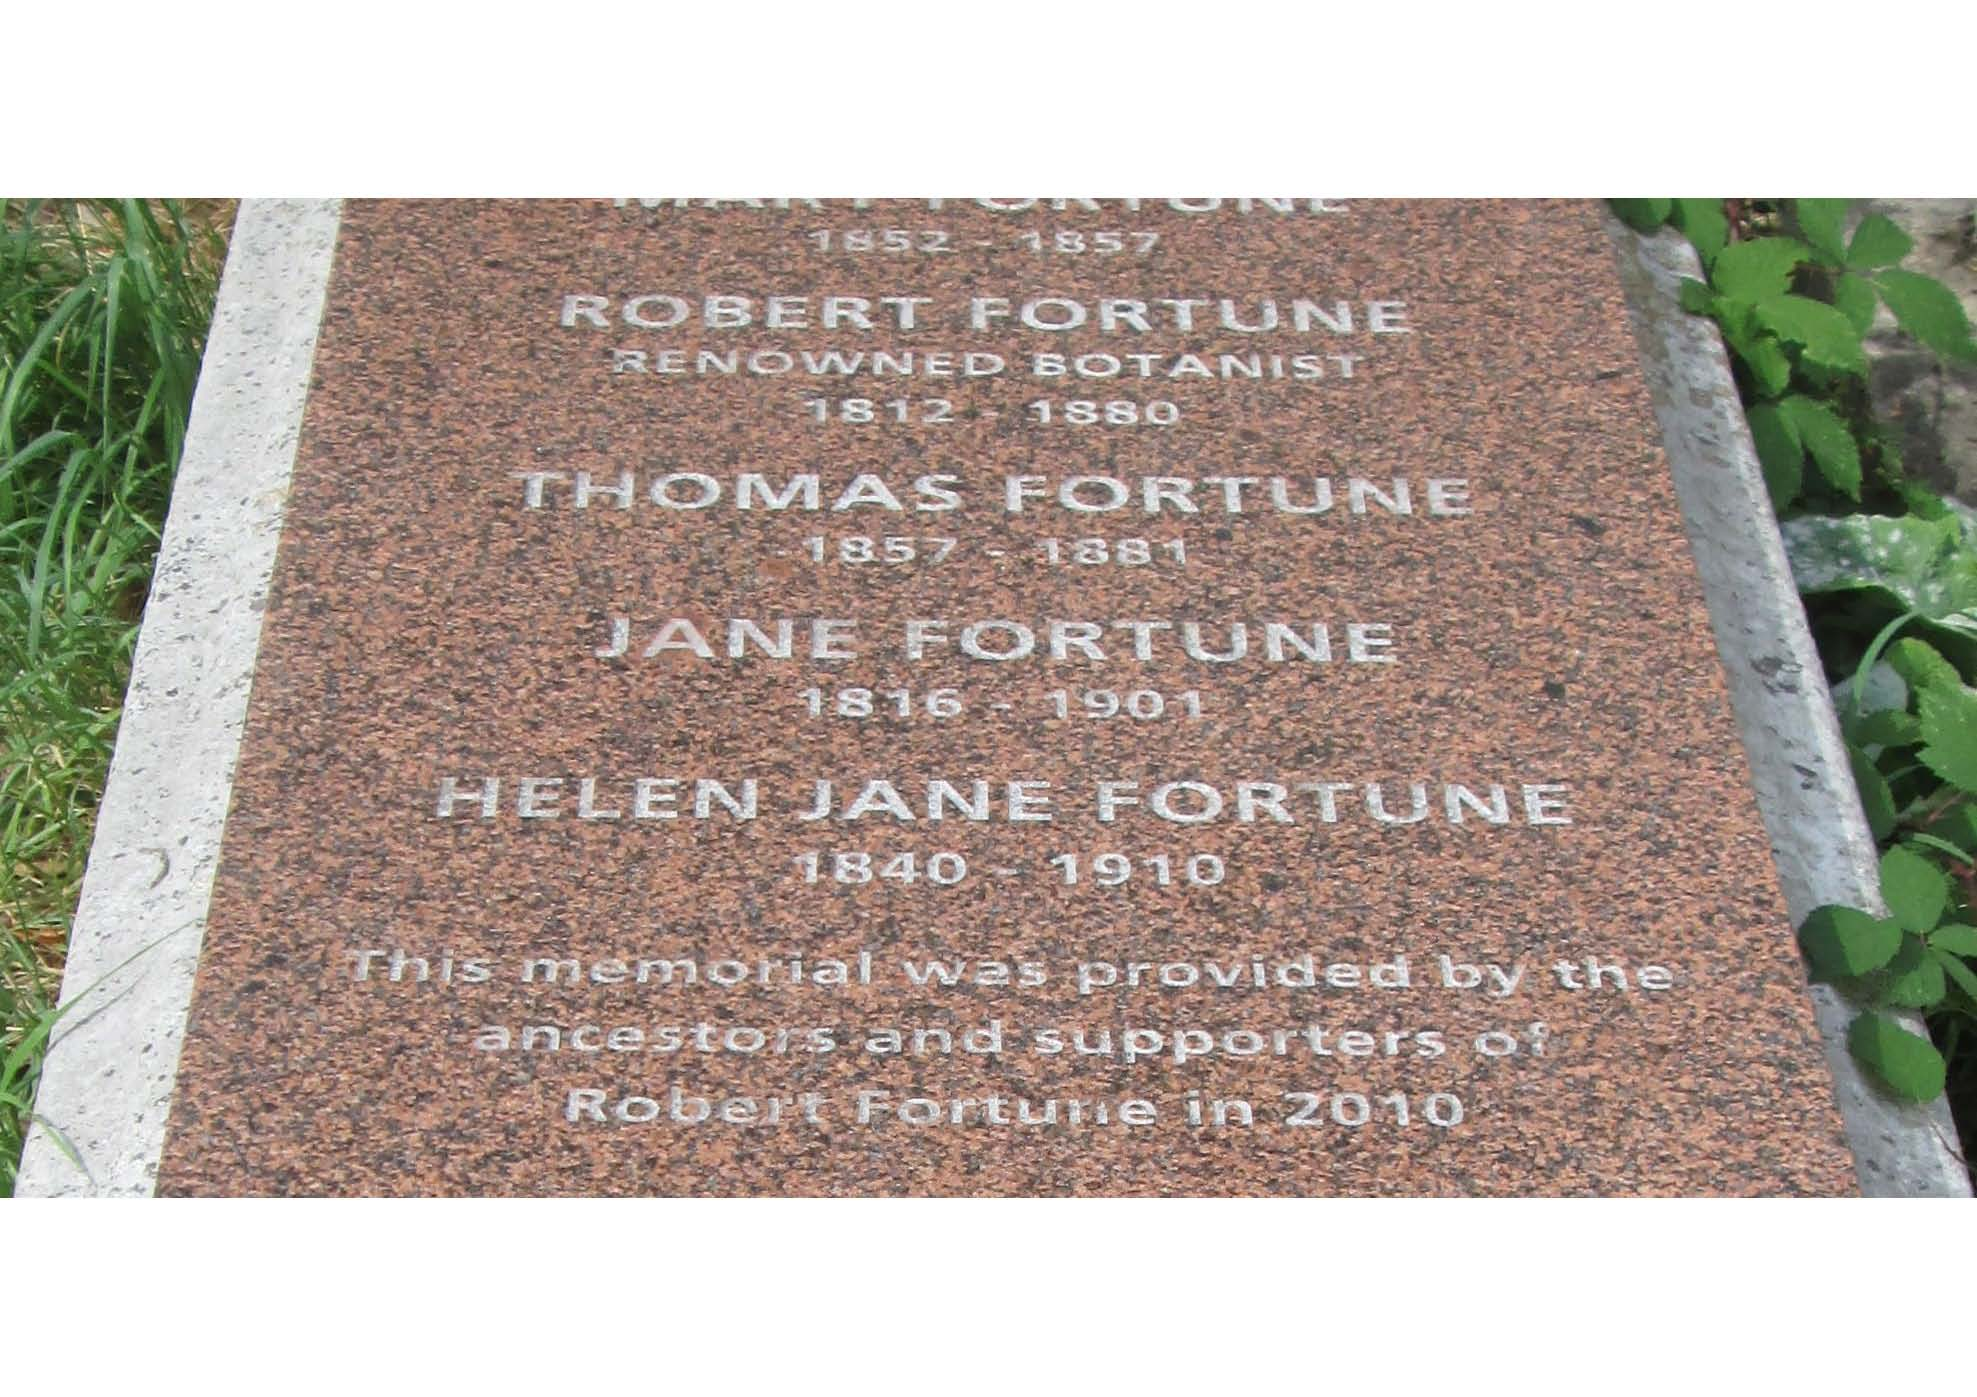 Robert Fortune Image 2